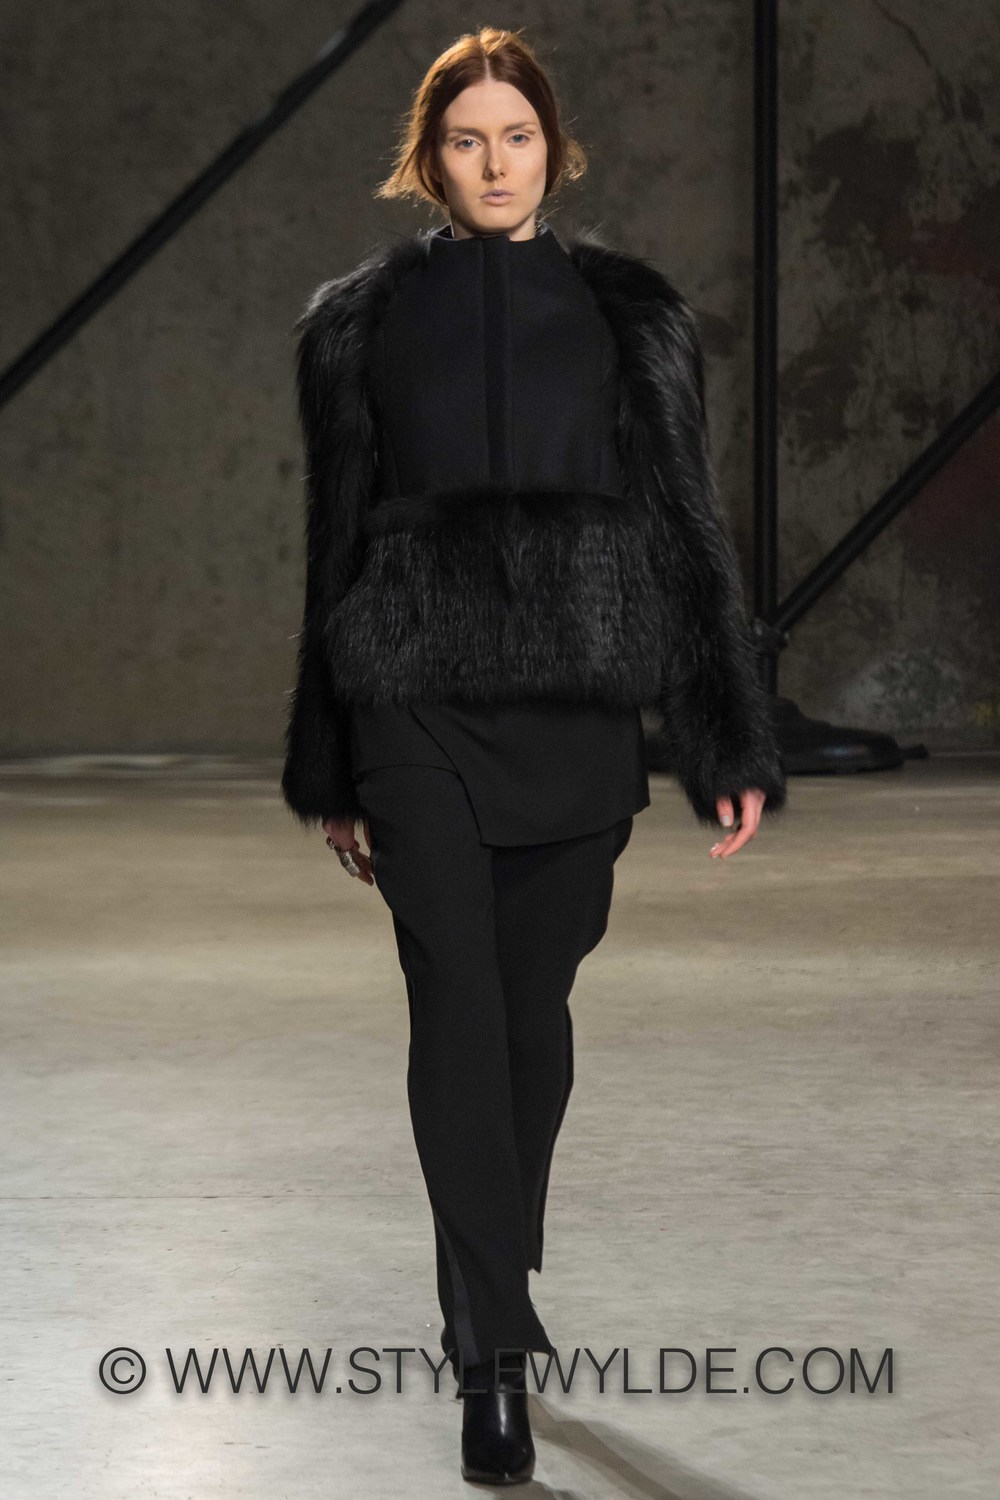 stylewylde_sally_lapointe_fw_2014-2.jpg